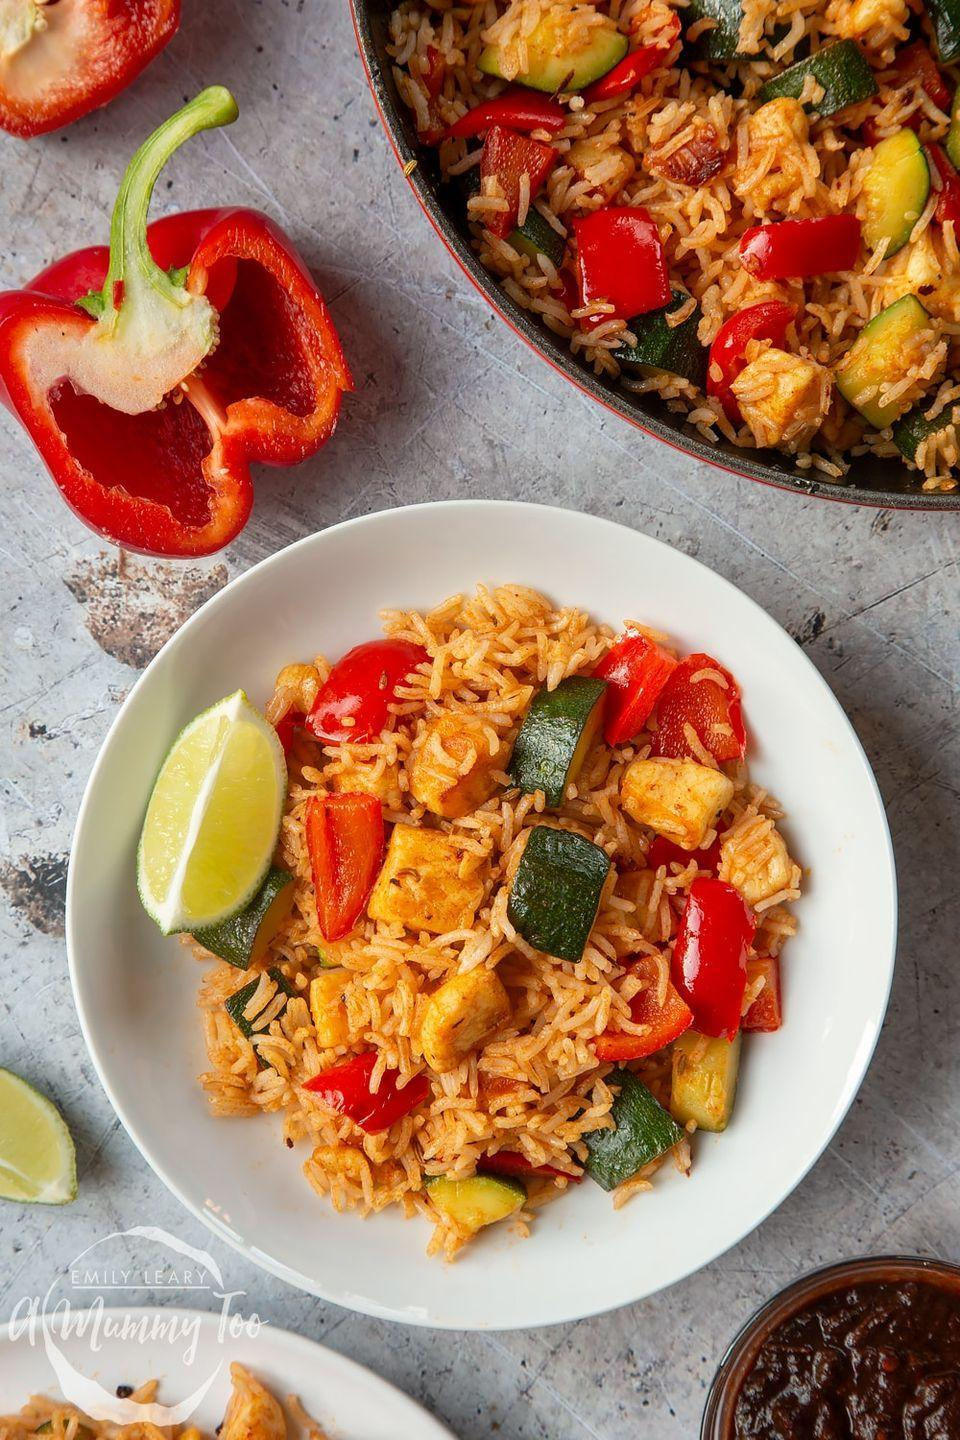 """<p>A simple dish that uses halloumi, peppers and courgette for a combination of spicy, smoky, creamy and salty flavours.</p><p>Get the <a href=""""https://www.amummytoo.co.uk/chilli-bbq-rice-recipe/"""" rel=""""nofollow noopener"""" target=""""_blank"""" data-ylk=""""slk:Spicy BBQ Halloumi Rice"""" class=""""link rapid-noclick-resp"""">Spicy BBQ Halloumi Rice</a> recipe. </p><p>Recipe from <a href=""""https://www.amummytoo.co.uk/"""" rel=""""nofollow noopener"""" target=""""_blank"""" data-ylk=""""slk:A Mummy Too"""" class=""""link rapid-noclick-resp"""">A Mummy Too</a>.</p>"""